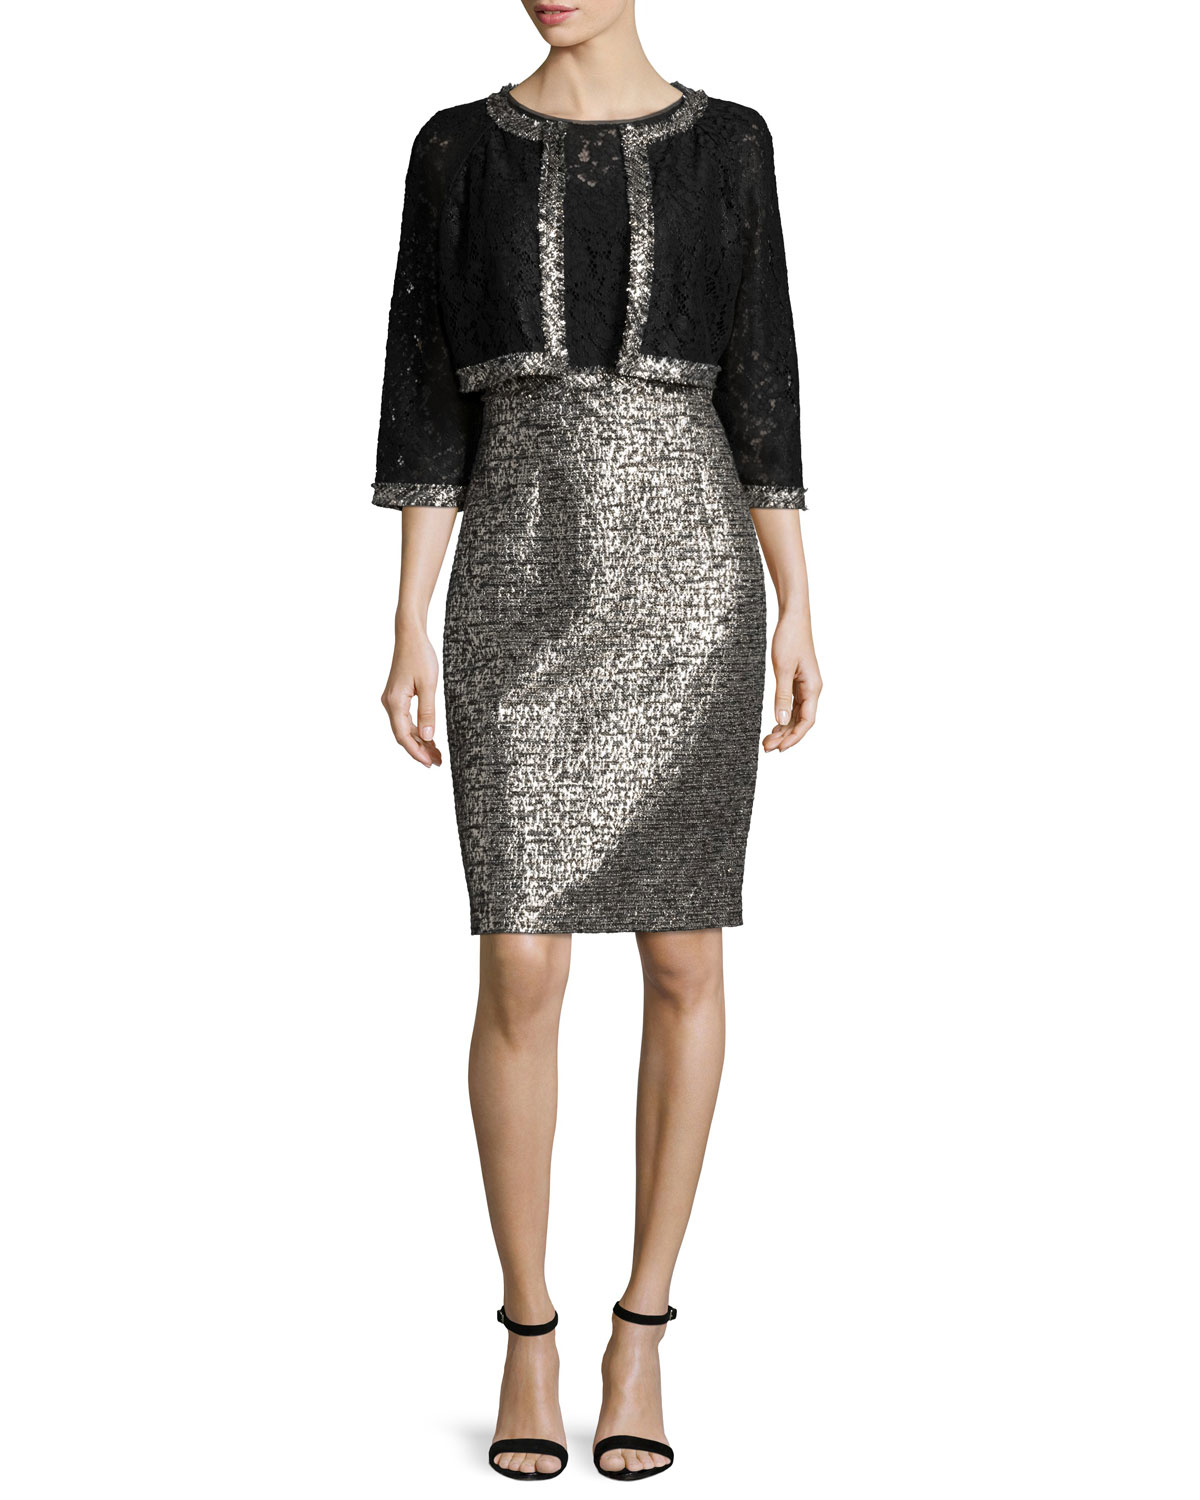 Kay Unger Jacket Amp Dress Two Piece Set In Black Lyst